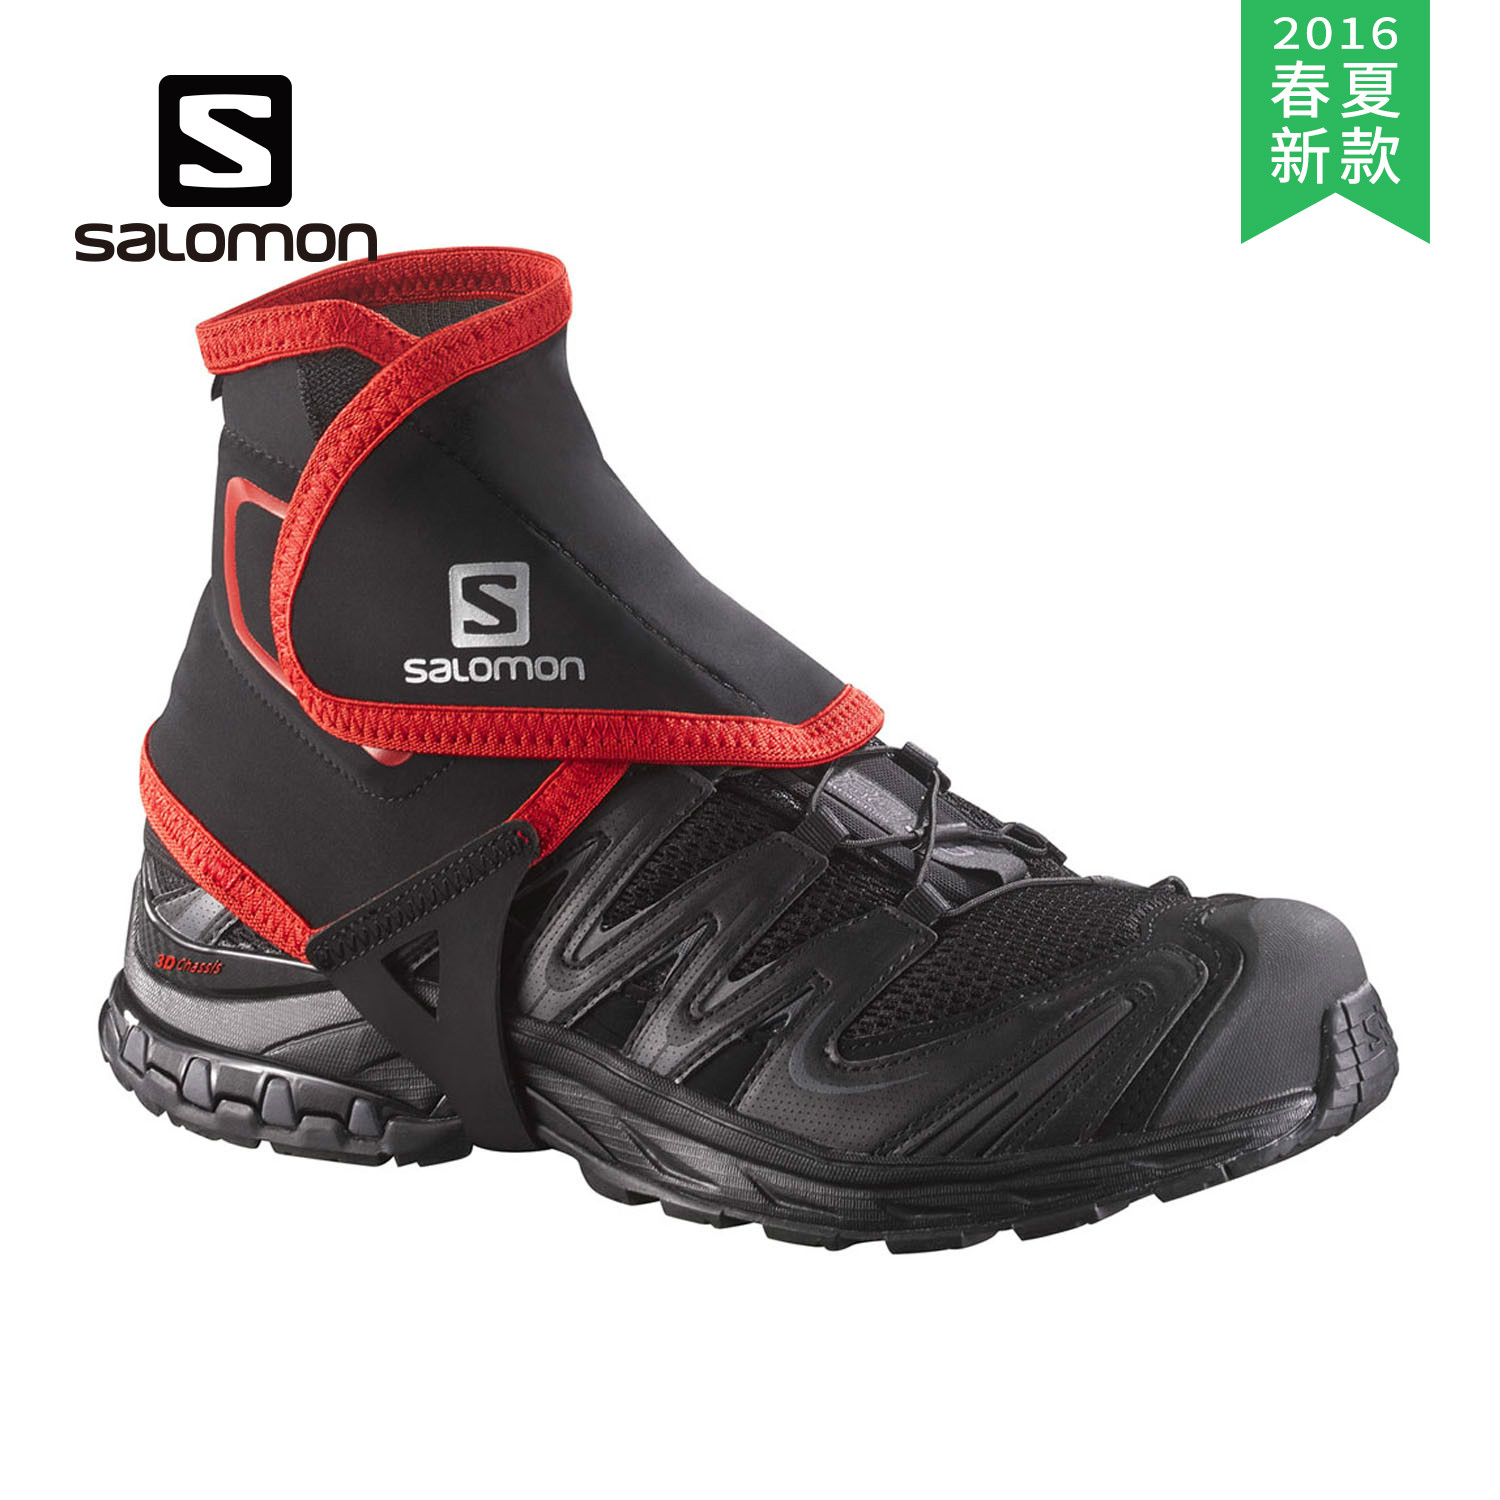 [2016] spring and summer salomon/salomon trail gaiters high leggings 380021